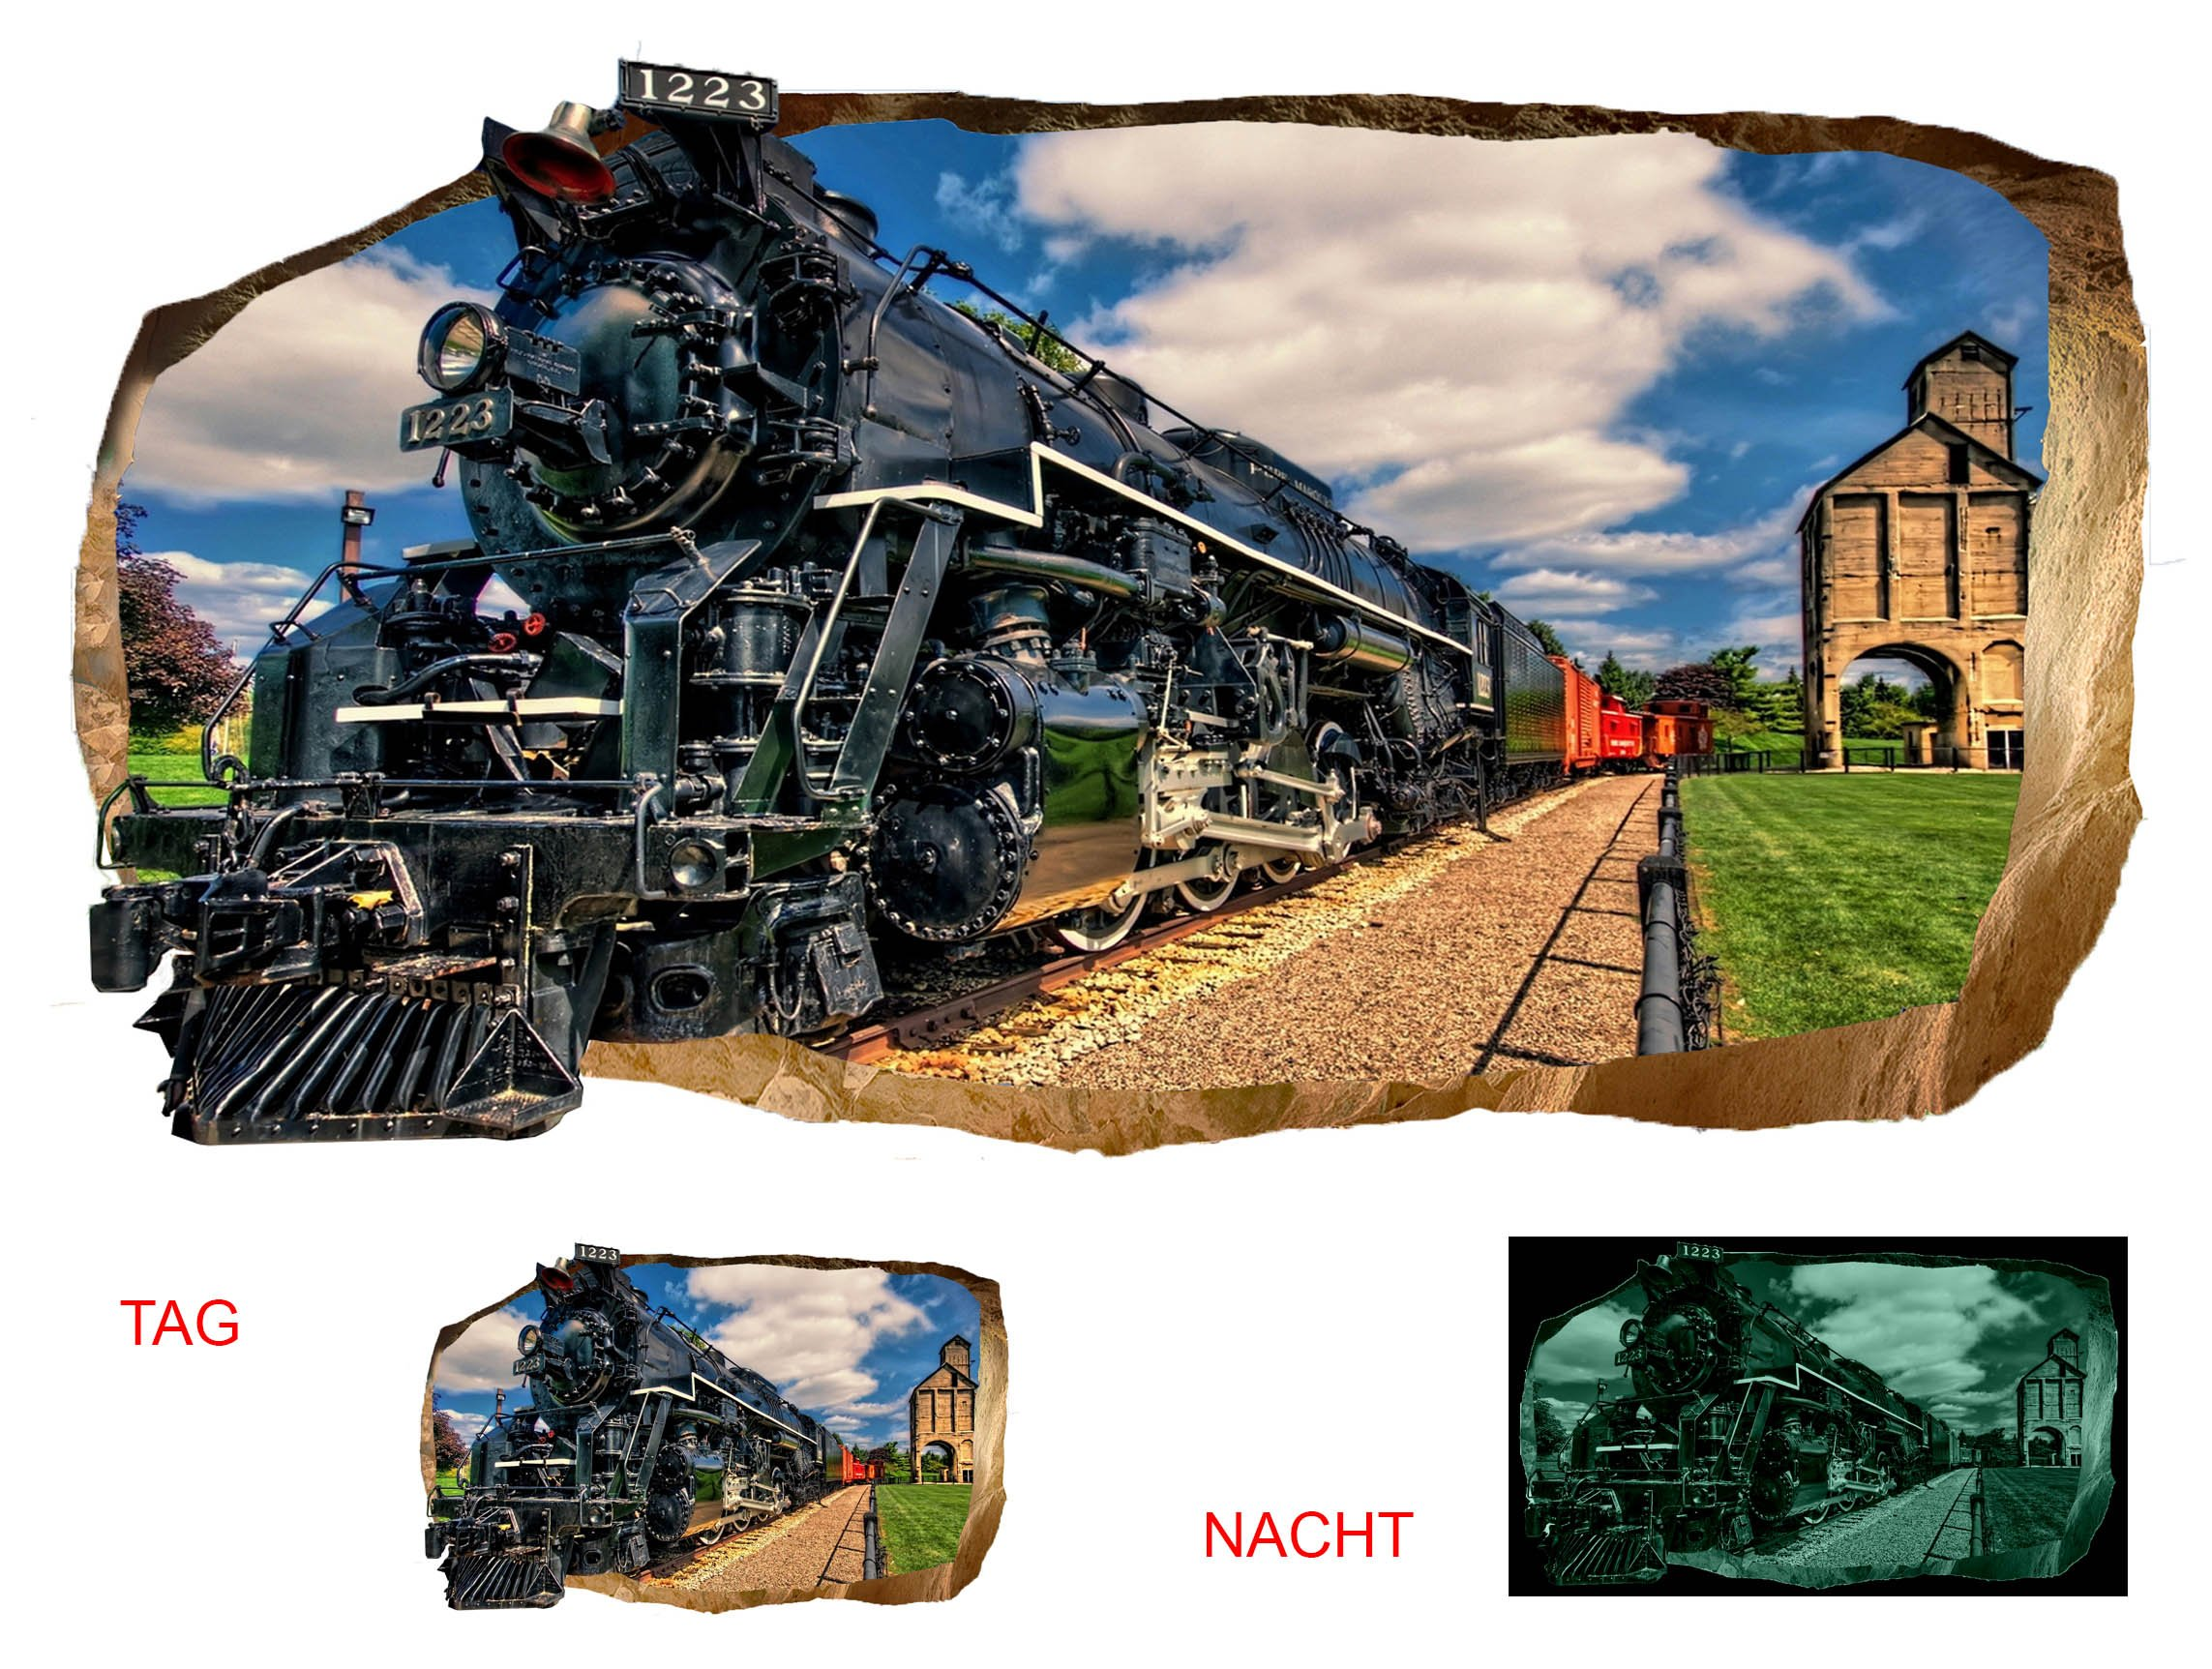 Startonight 3D Mural Wall Art Photo Decor Luxury Train Amazing Dual View Surprise Large Wall Mural Wallpaper for Living or Bedroom Room 120 x 220 cm